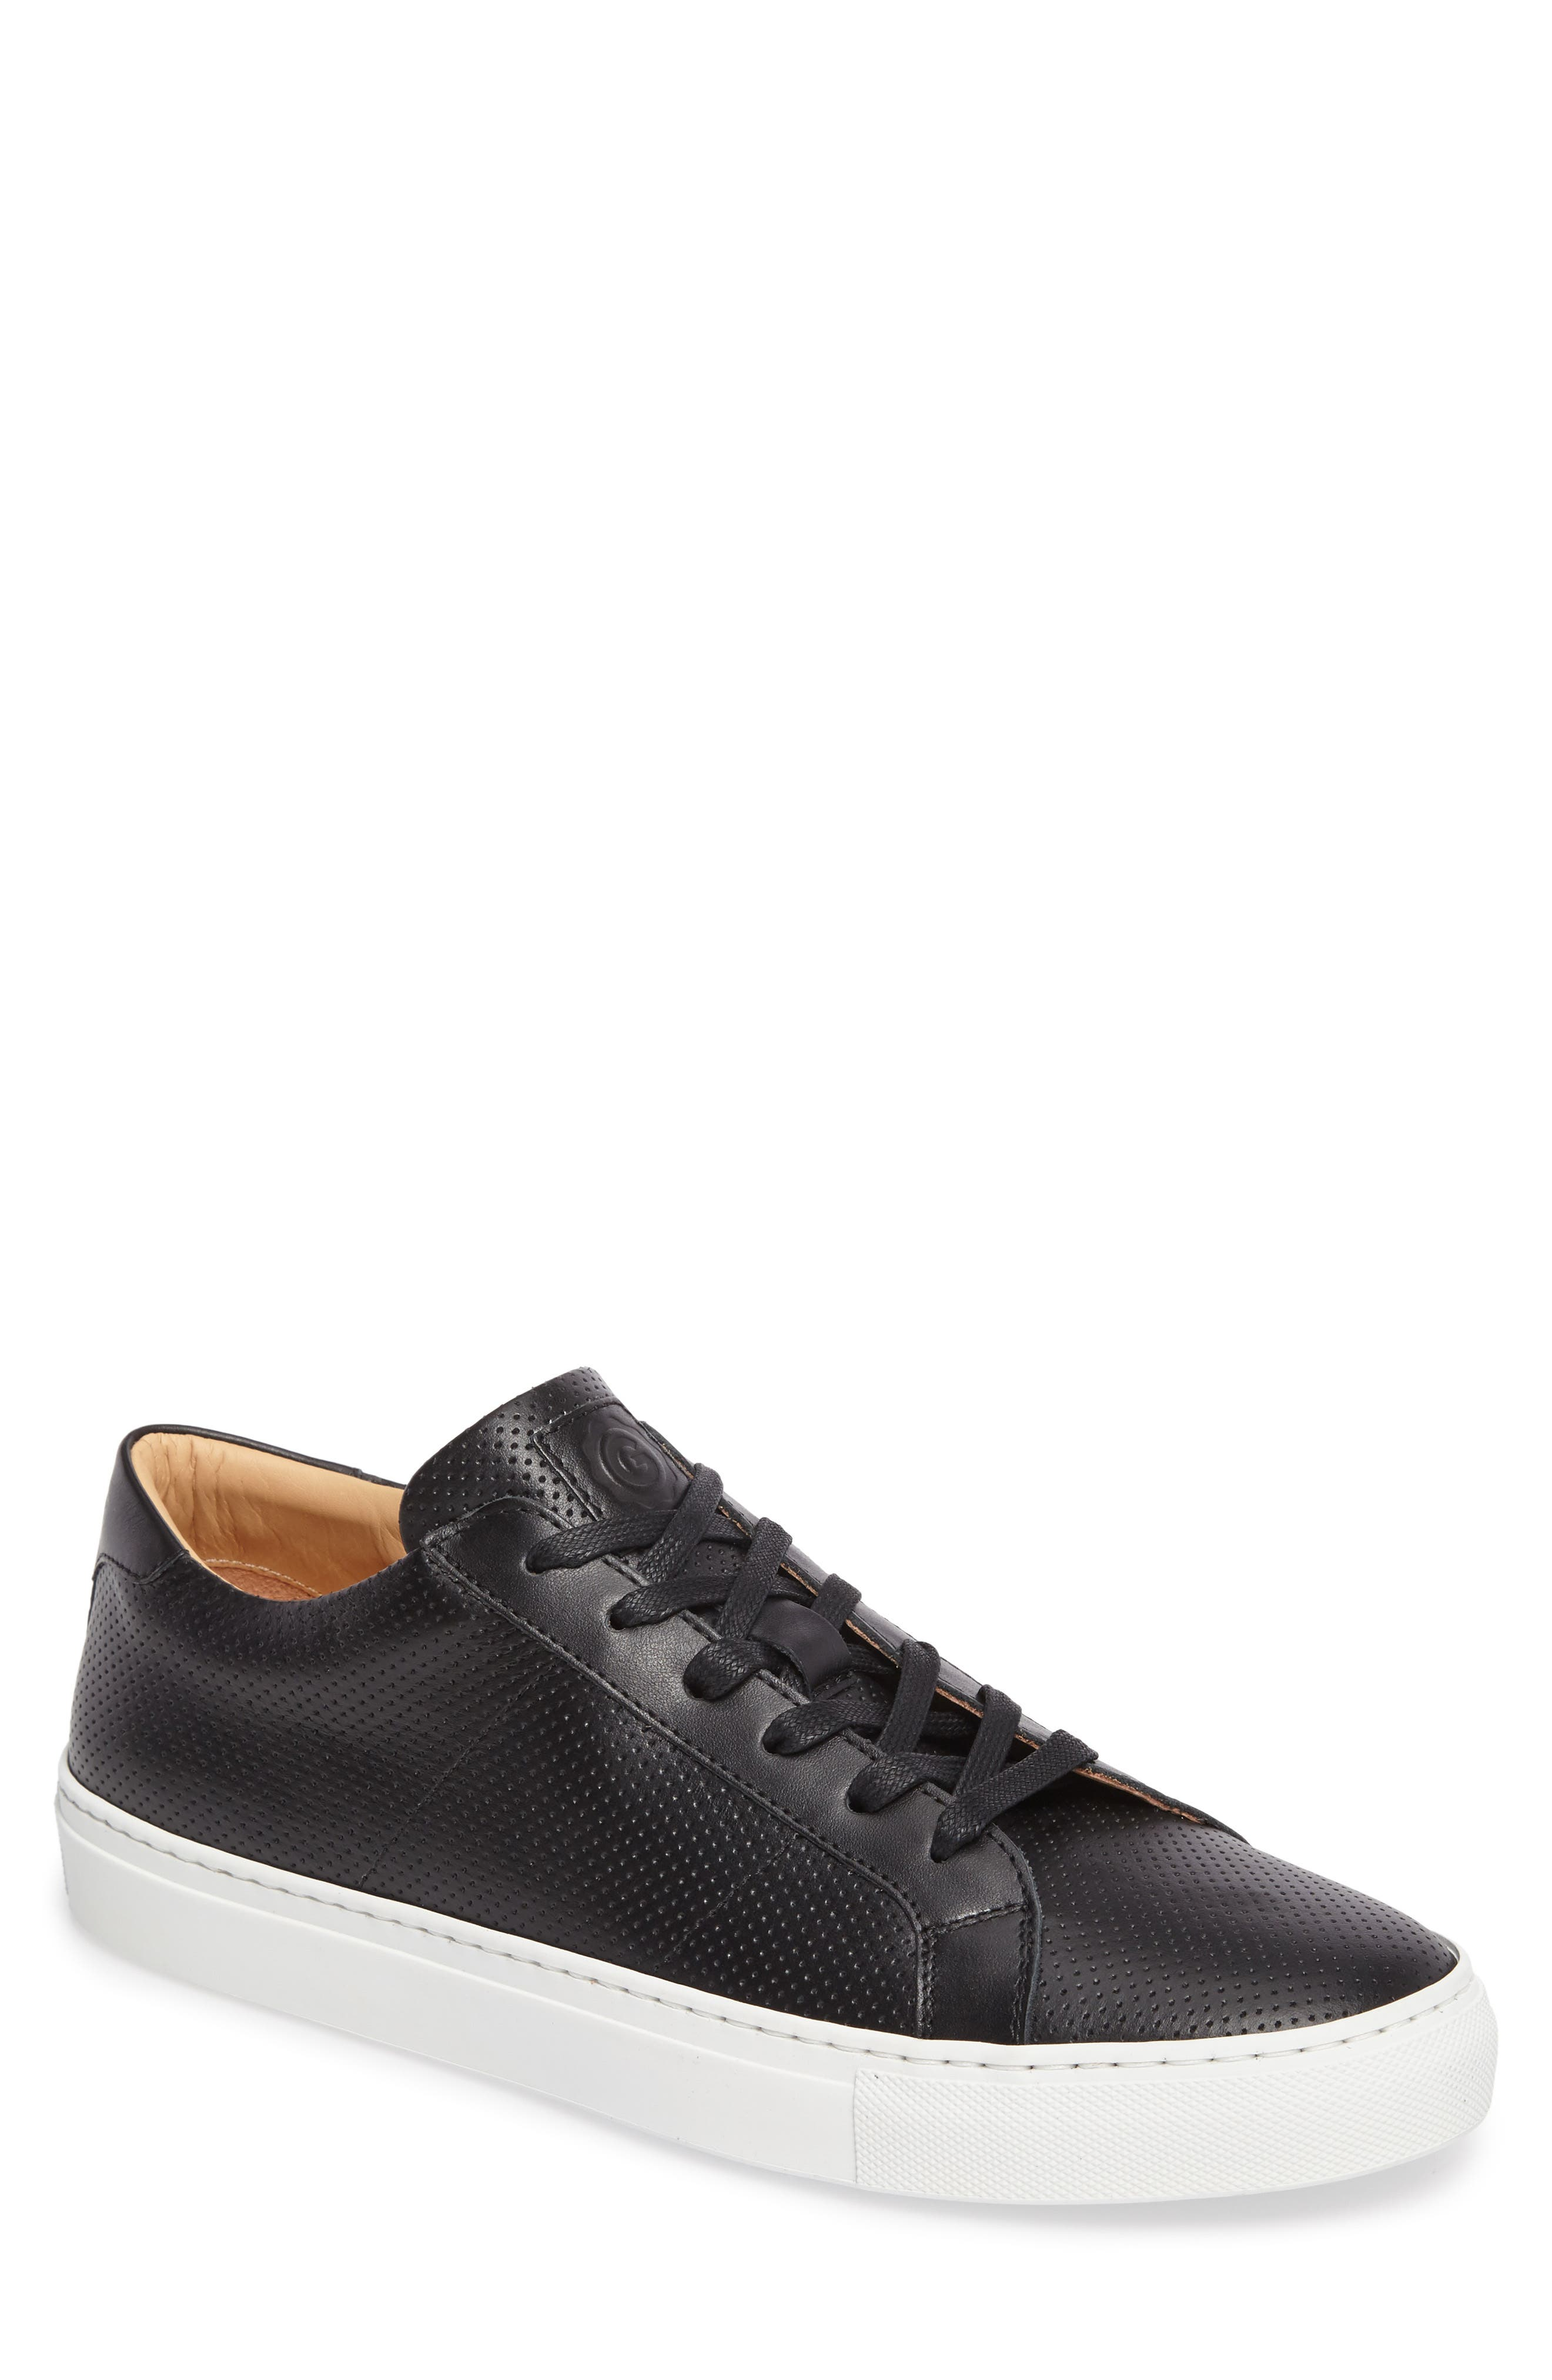 Royale Perforated Low Top Sneaker,                             Main thumbnail 1, color,                             001